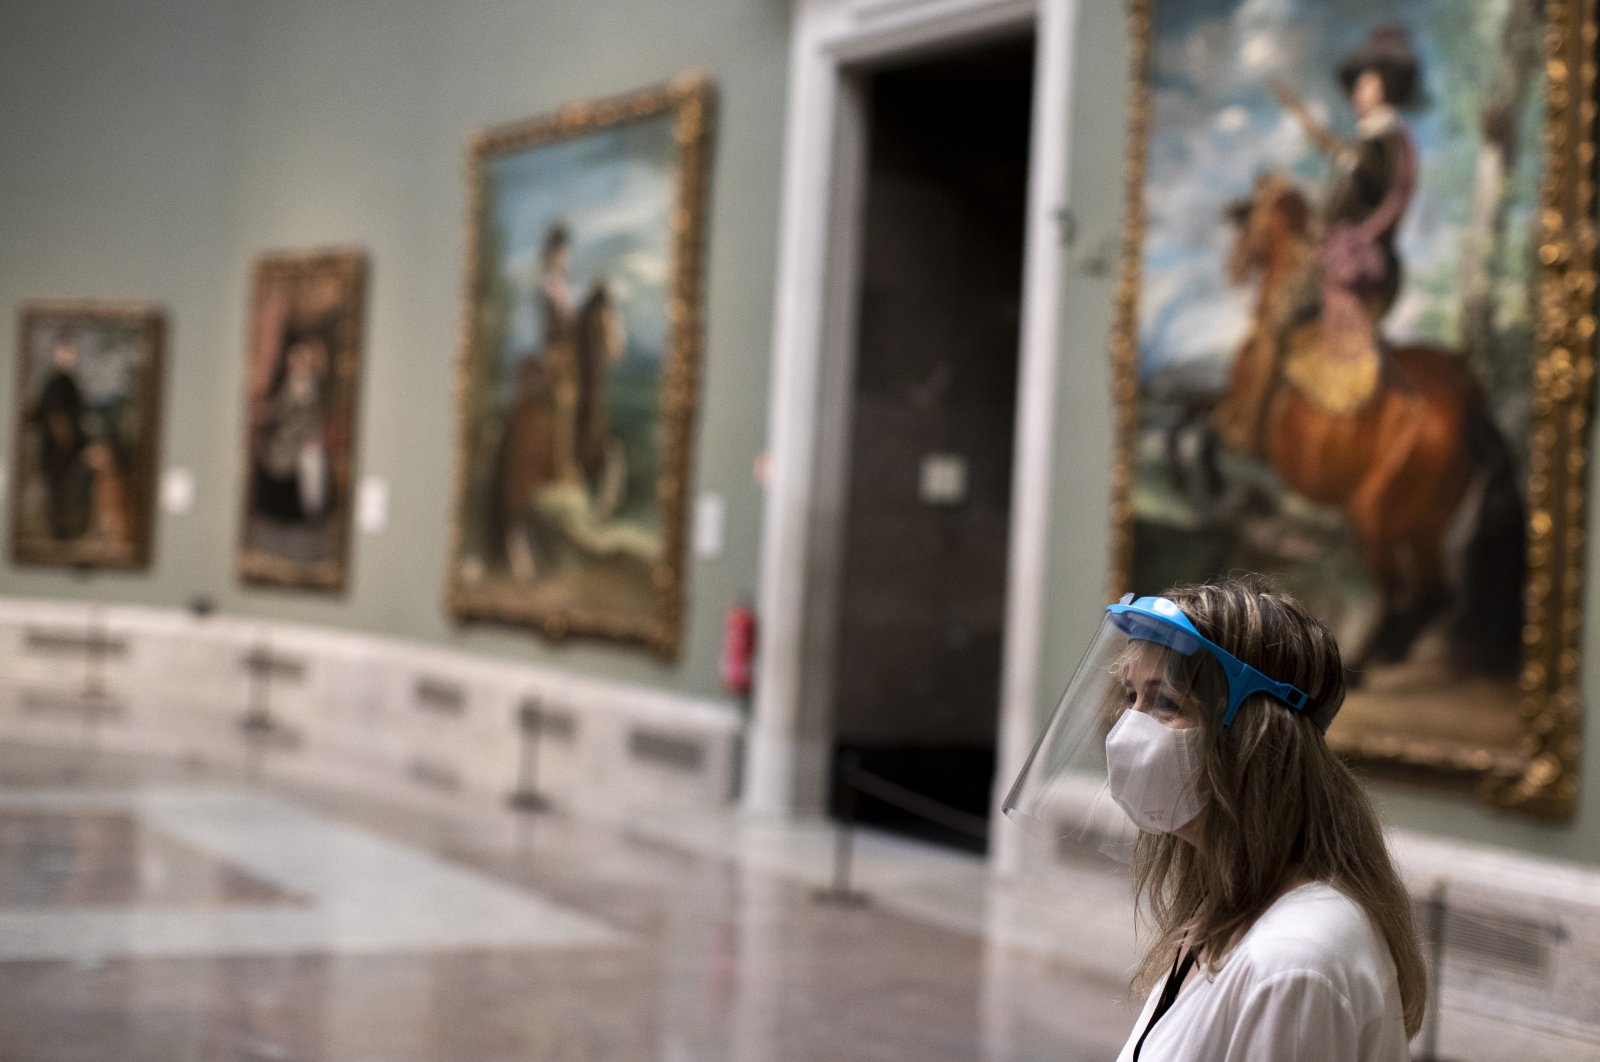 A staff member of museum wearing face mask and shield protection as protection against coronavirus stands for reopening on June 6 amid the coronavirus outbreak at Prado museum in Madrid, Spain, June 4, 2020. (AP)